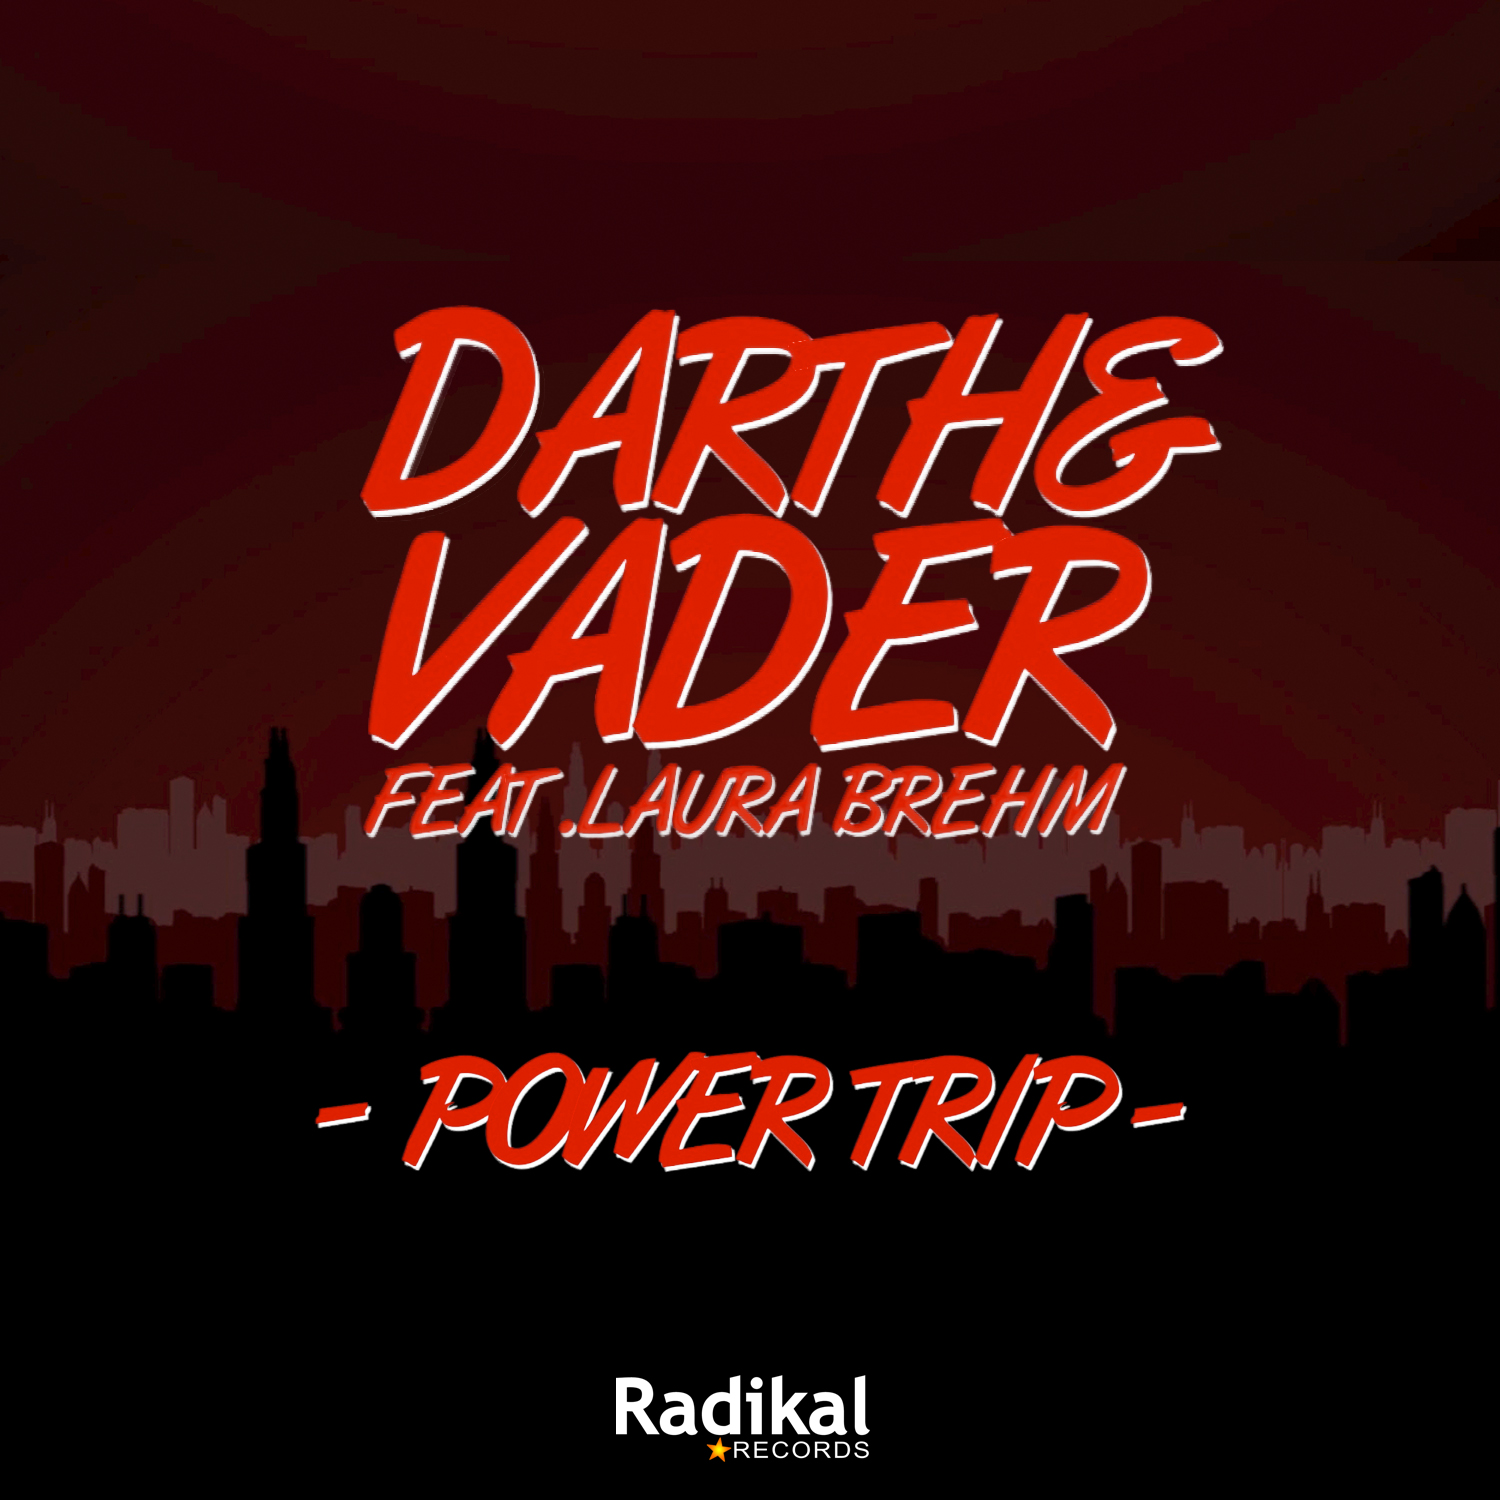 Darth & Vader feat. Laura Brehm - Power Trip